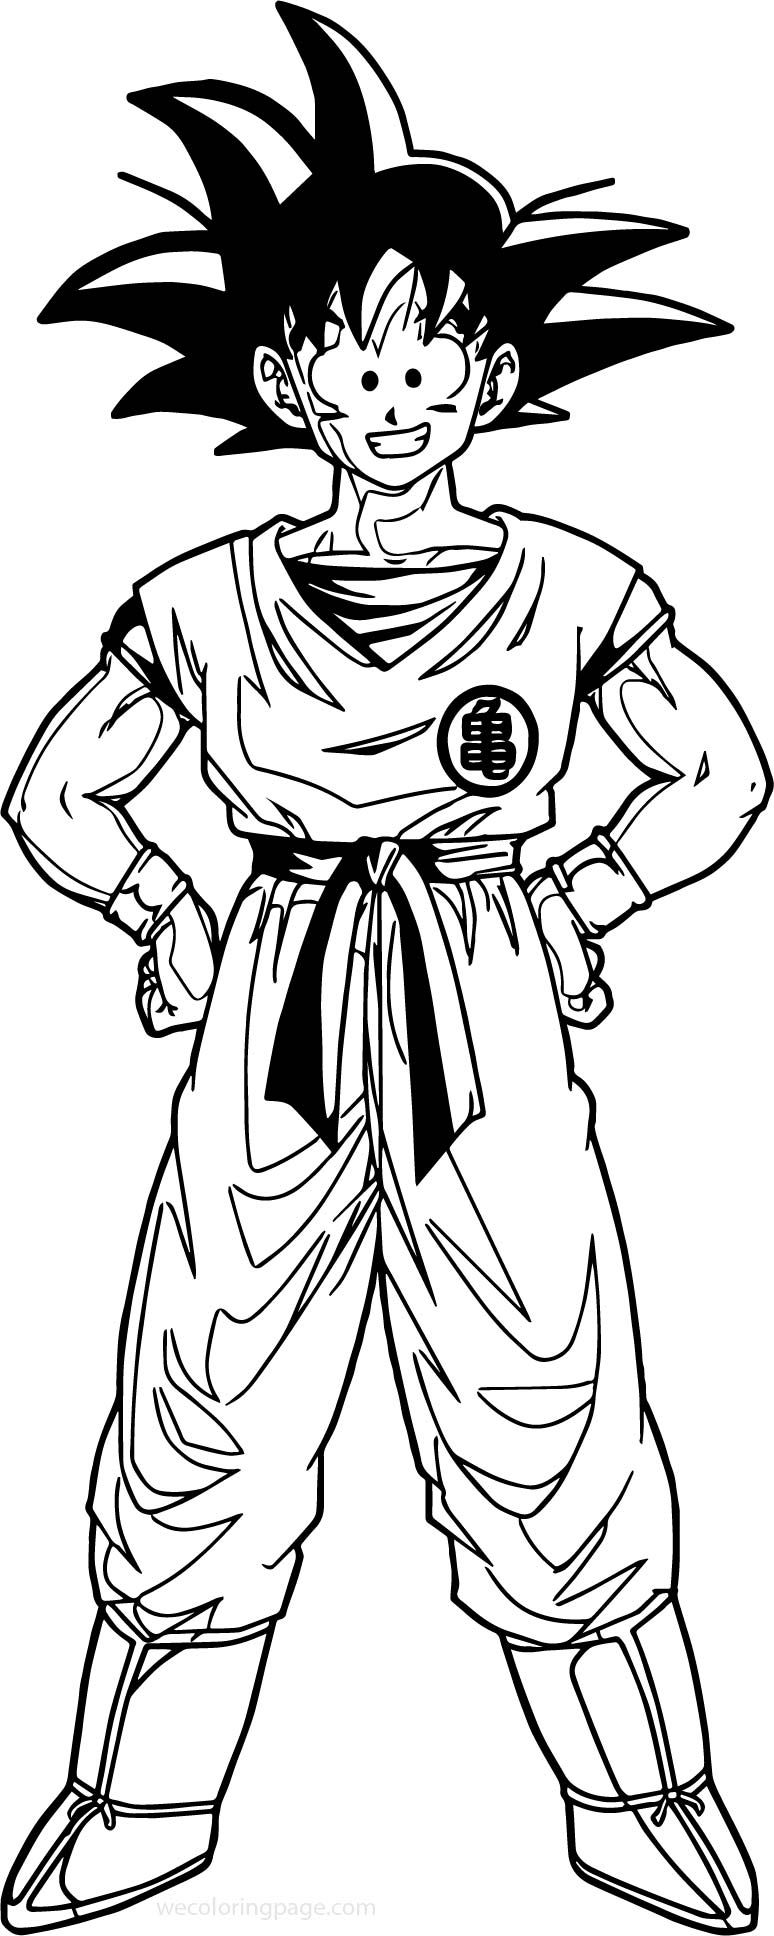 goku pictures to print goku coloring pages coloring pages to print goku to pictures print